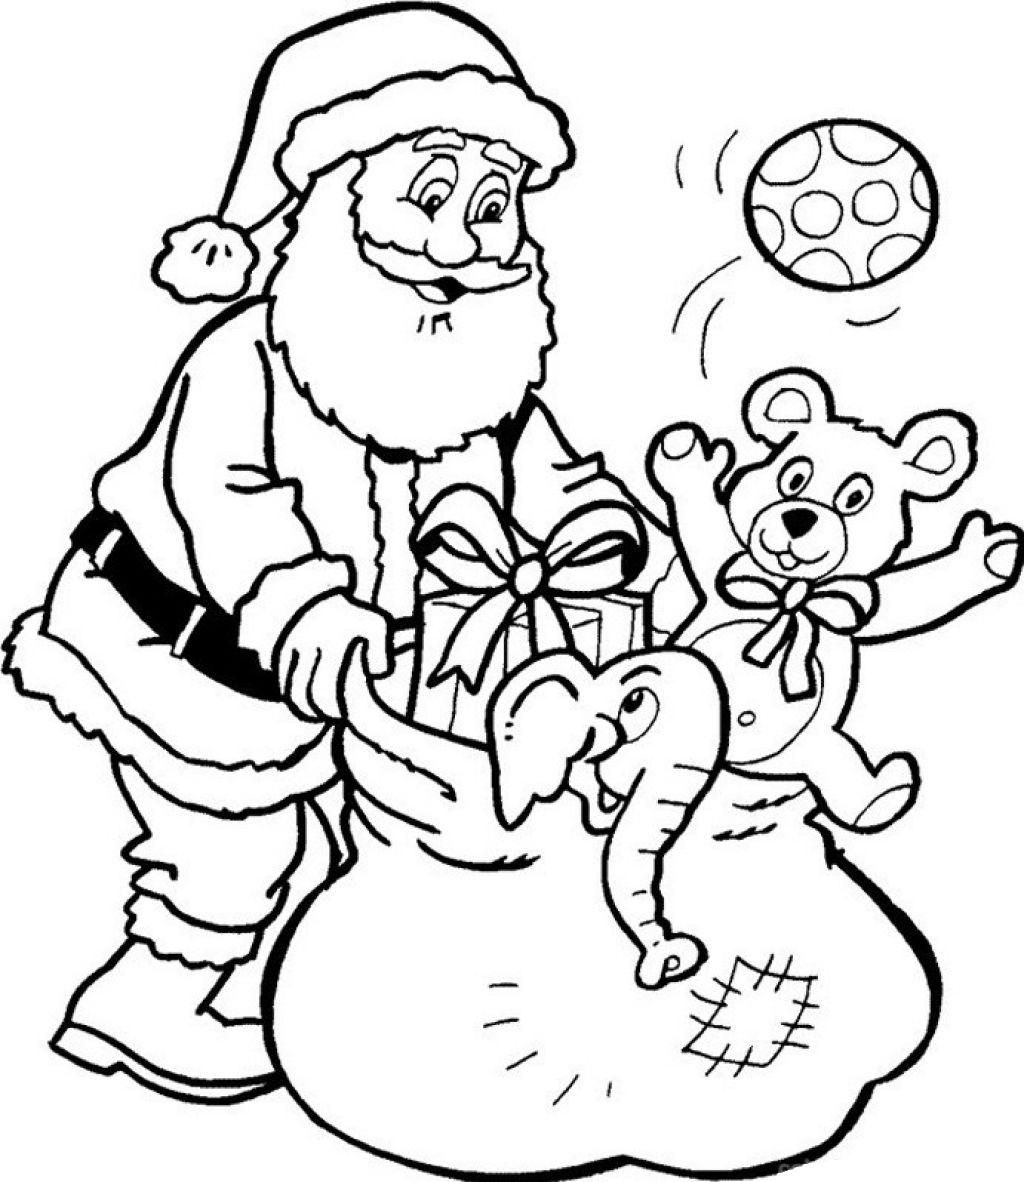 Printable Santa Claus Coloring Page Pages Free Online For Preschoolers